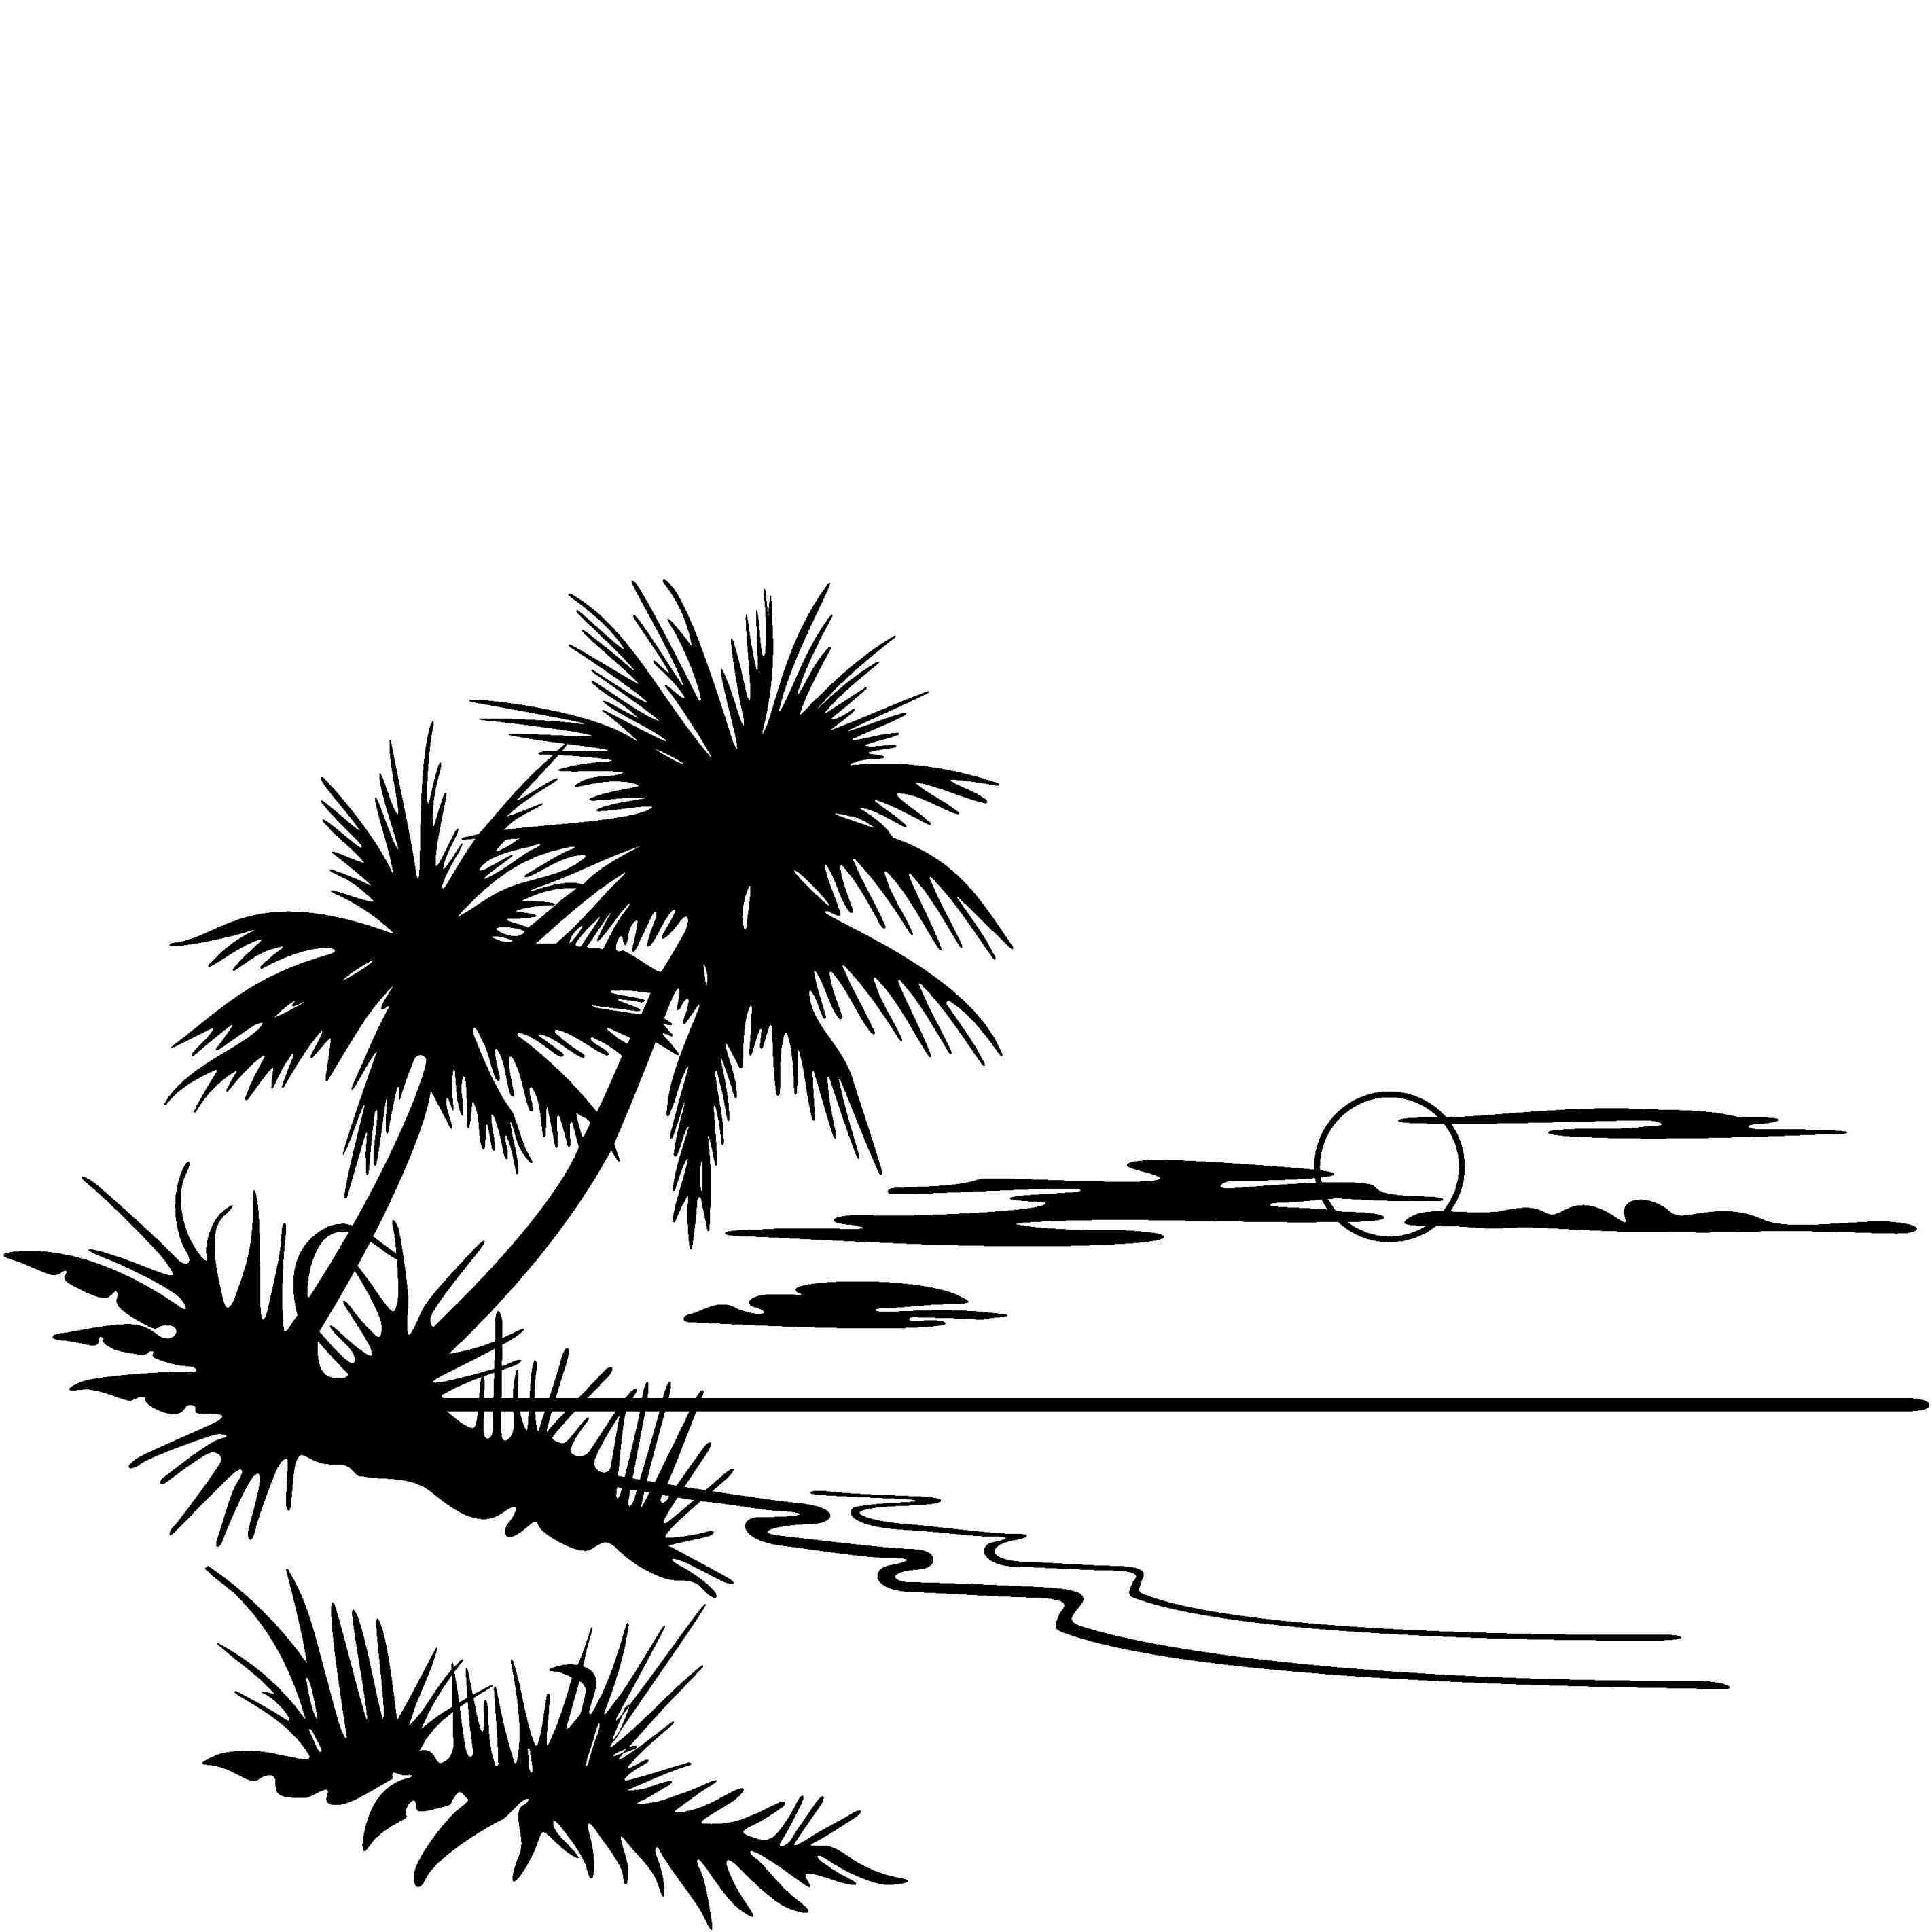 Clipart palm tree beach black and white image free stock Beach black and white two palm trees clip art black and white ... image free stock